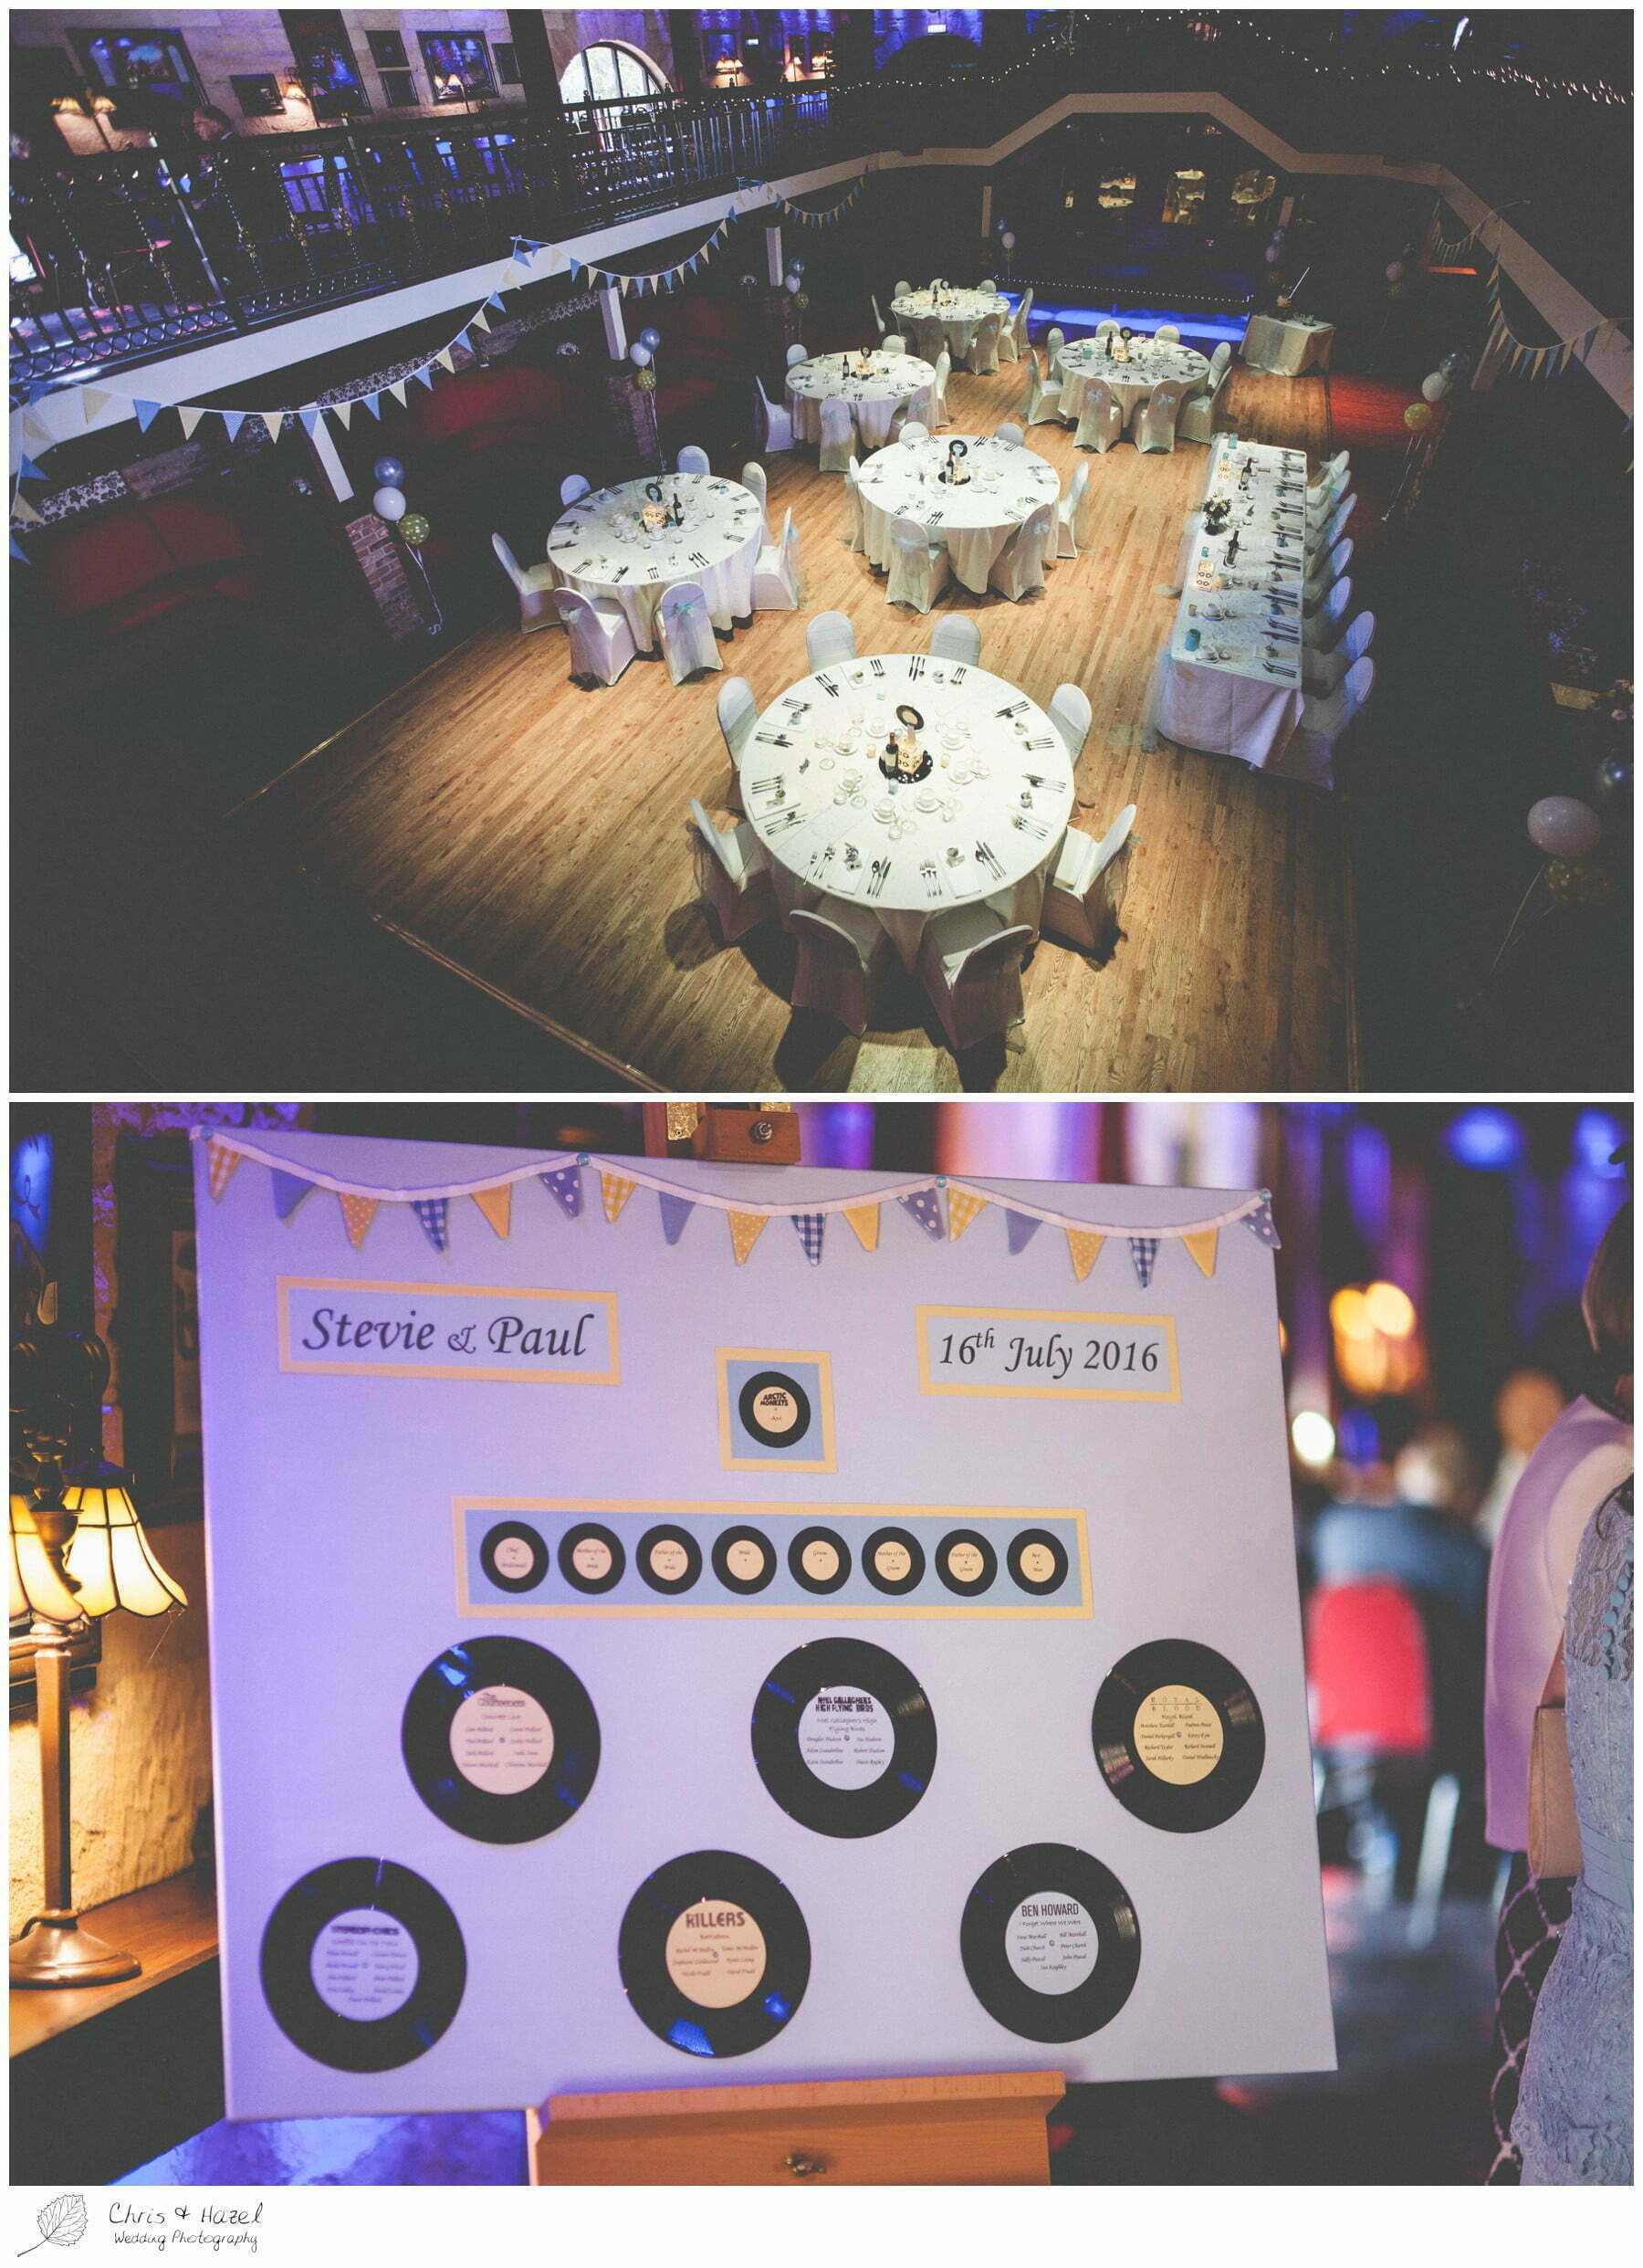 Seating plan vinyl records music theme, wedding, south milford Wedding Photographer, the engine shed, wetherby wedding venue, Wedding Photography wetherby, Chris and Hazel Wedding Photography, stevie pollard, stevie standerline, paul standerline,